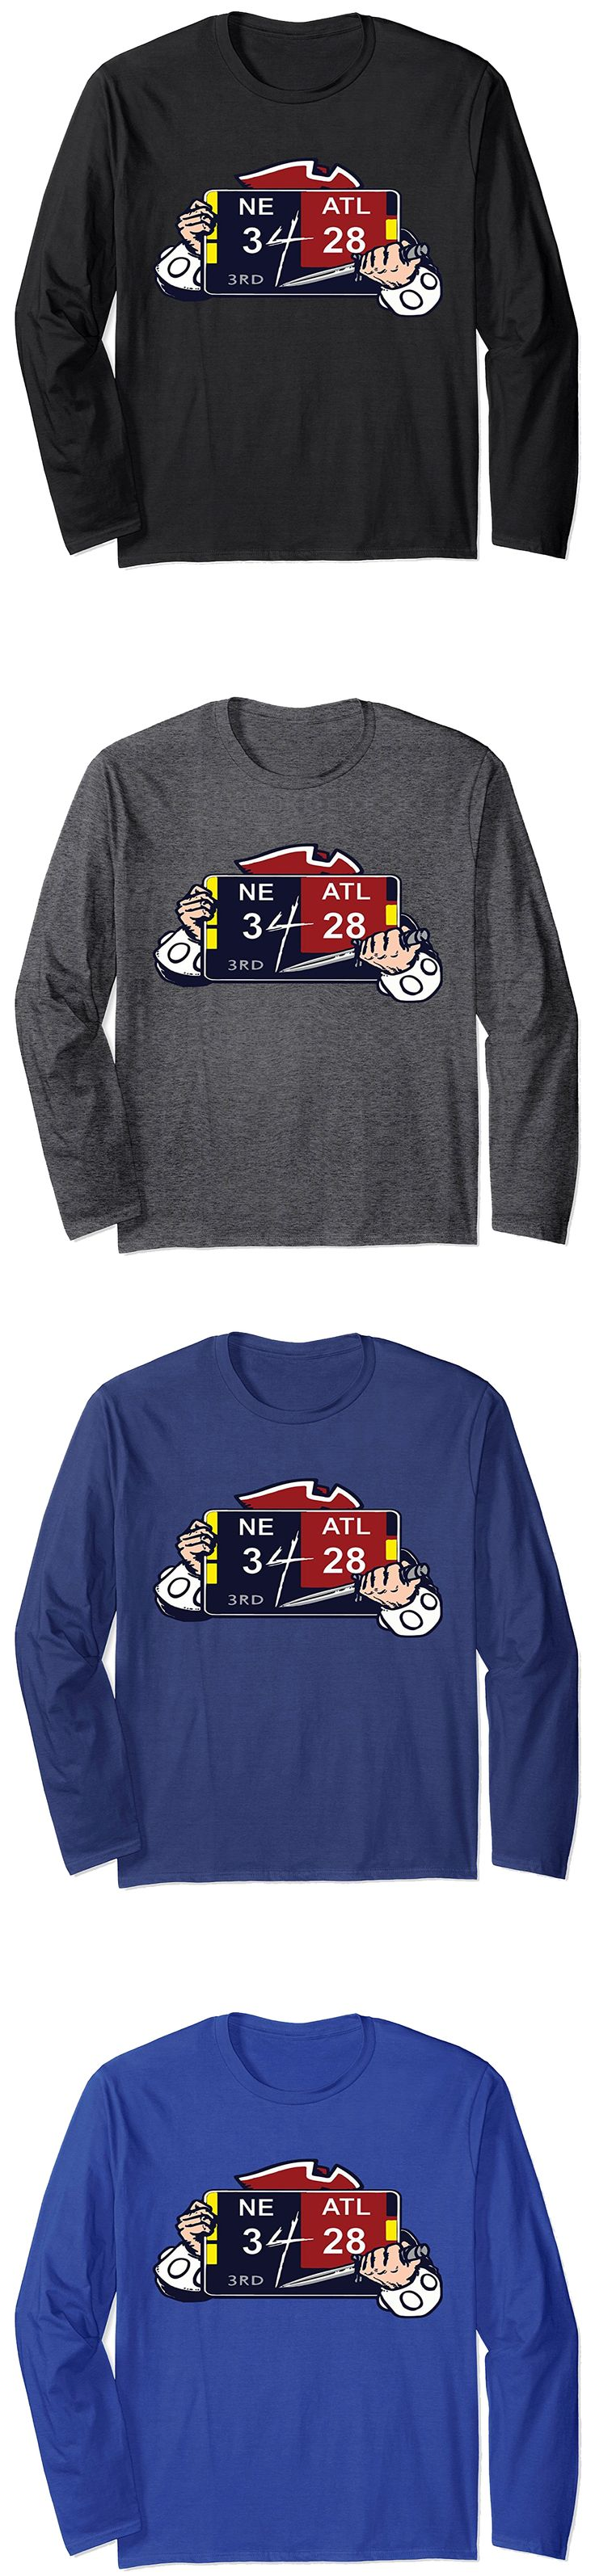 Premium Unisex New England Patriots NE 3 ATL 28 Final Score Long-sleeve T-Shirt. Available in 5 different colors. Get yours today on Amazon.